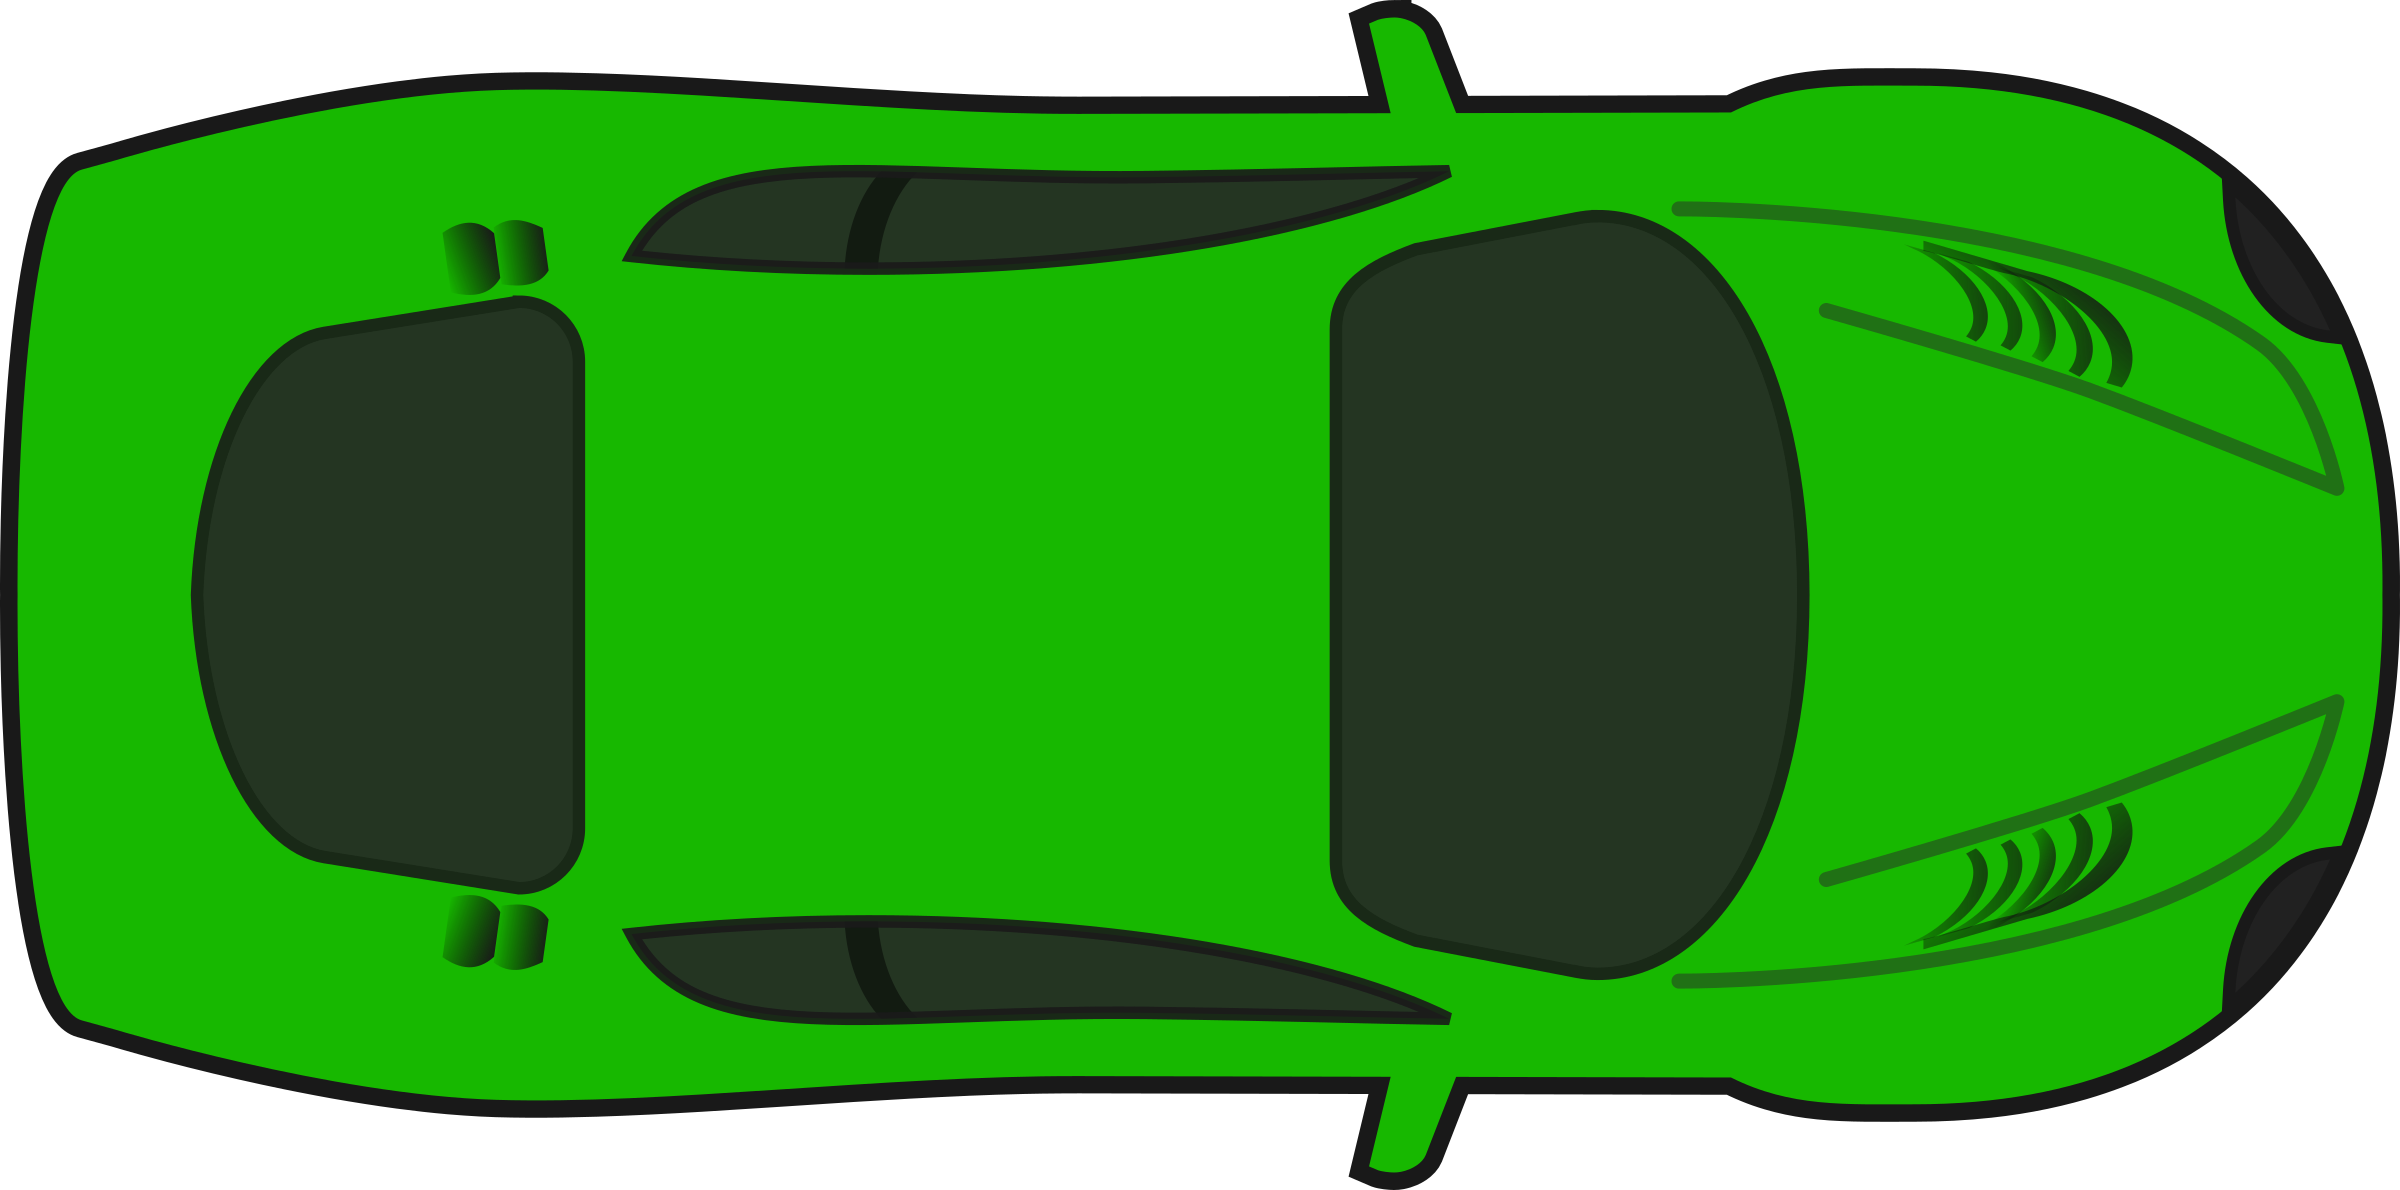 Green Racing Car (Top View) by qubodup